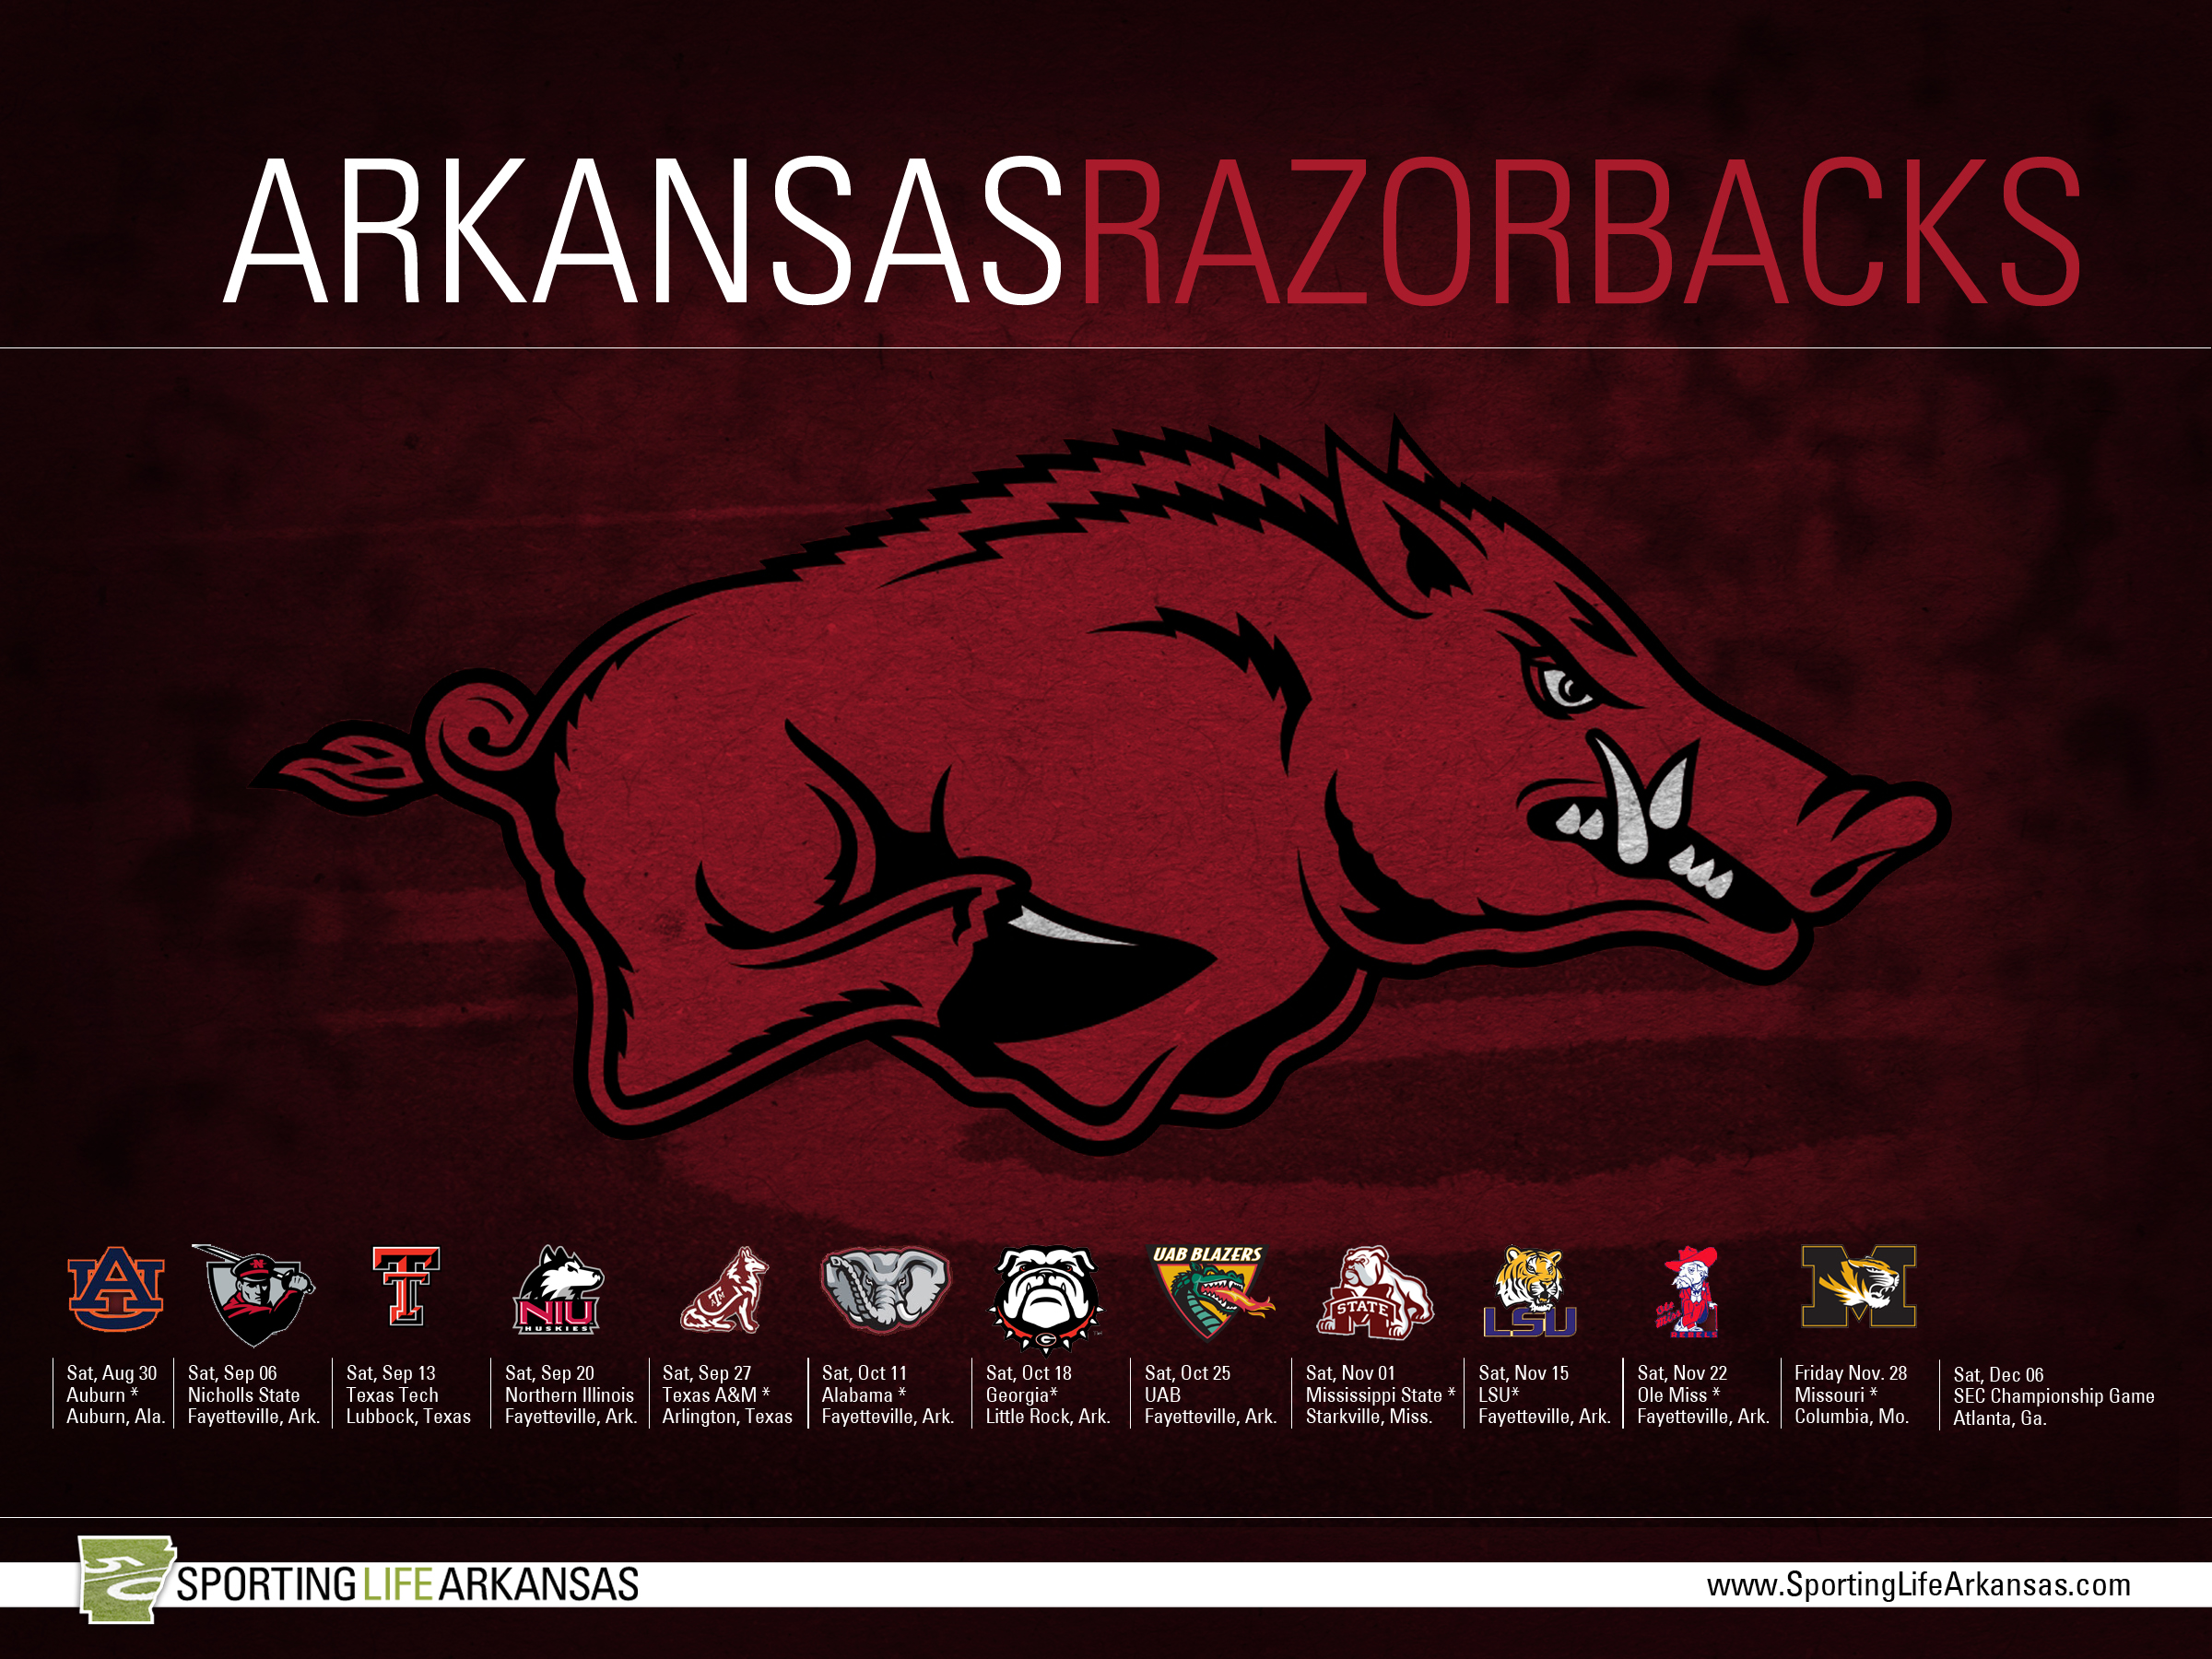 Arkansas Wallpapers Browser Themes More for Razorbacks Fans 2400x1800